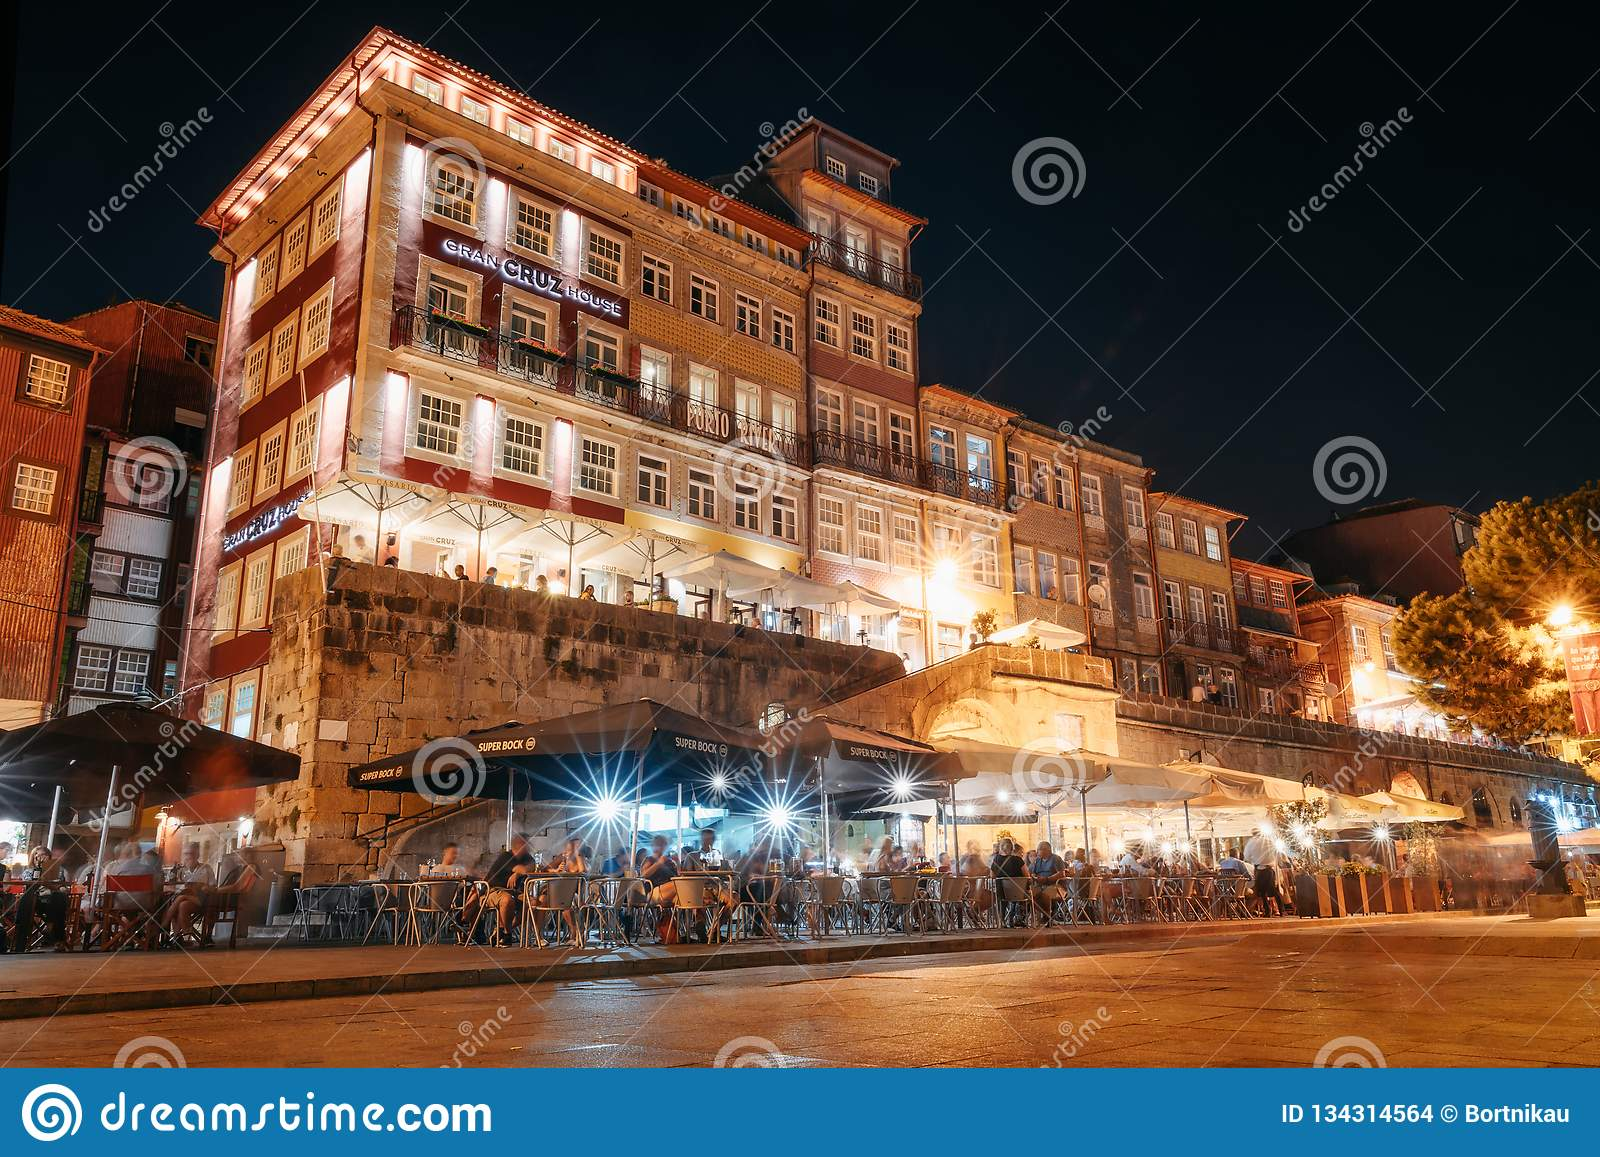 Nightlife on the crowded promenade of the Douro River with cafes and restaurants in Porto